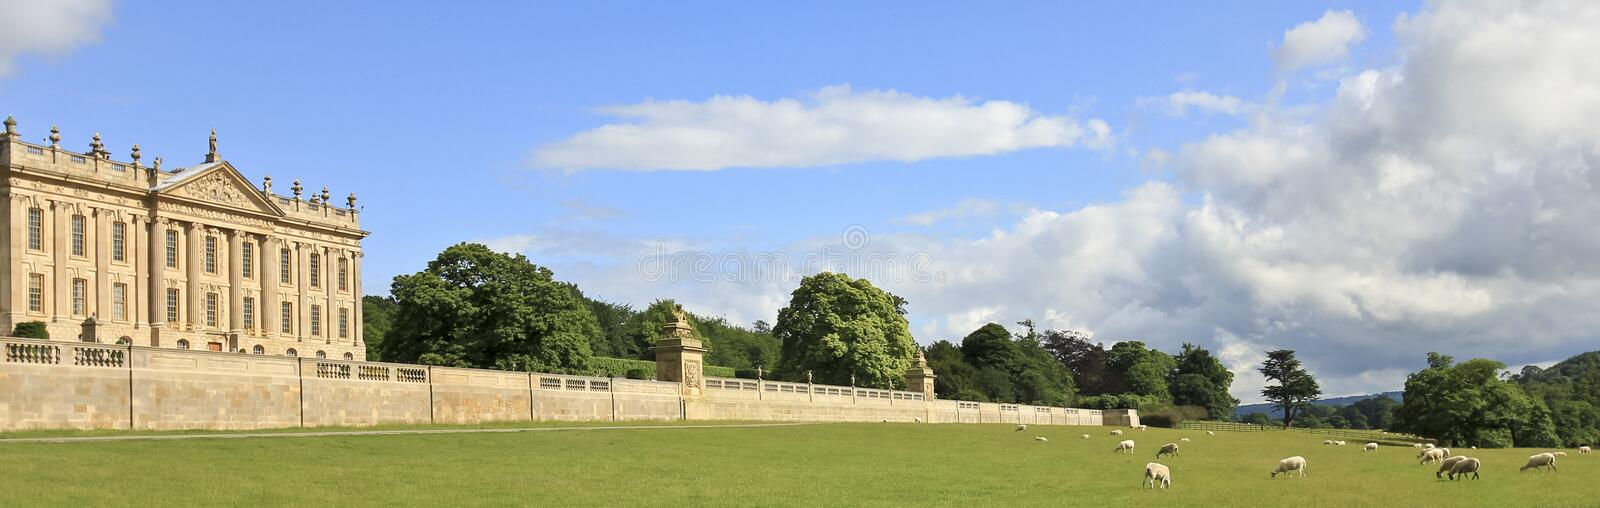 Download A View Of Chatsworth House, Great Britain Royalty Free Stock Images - Image: 26089329